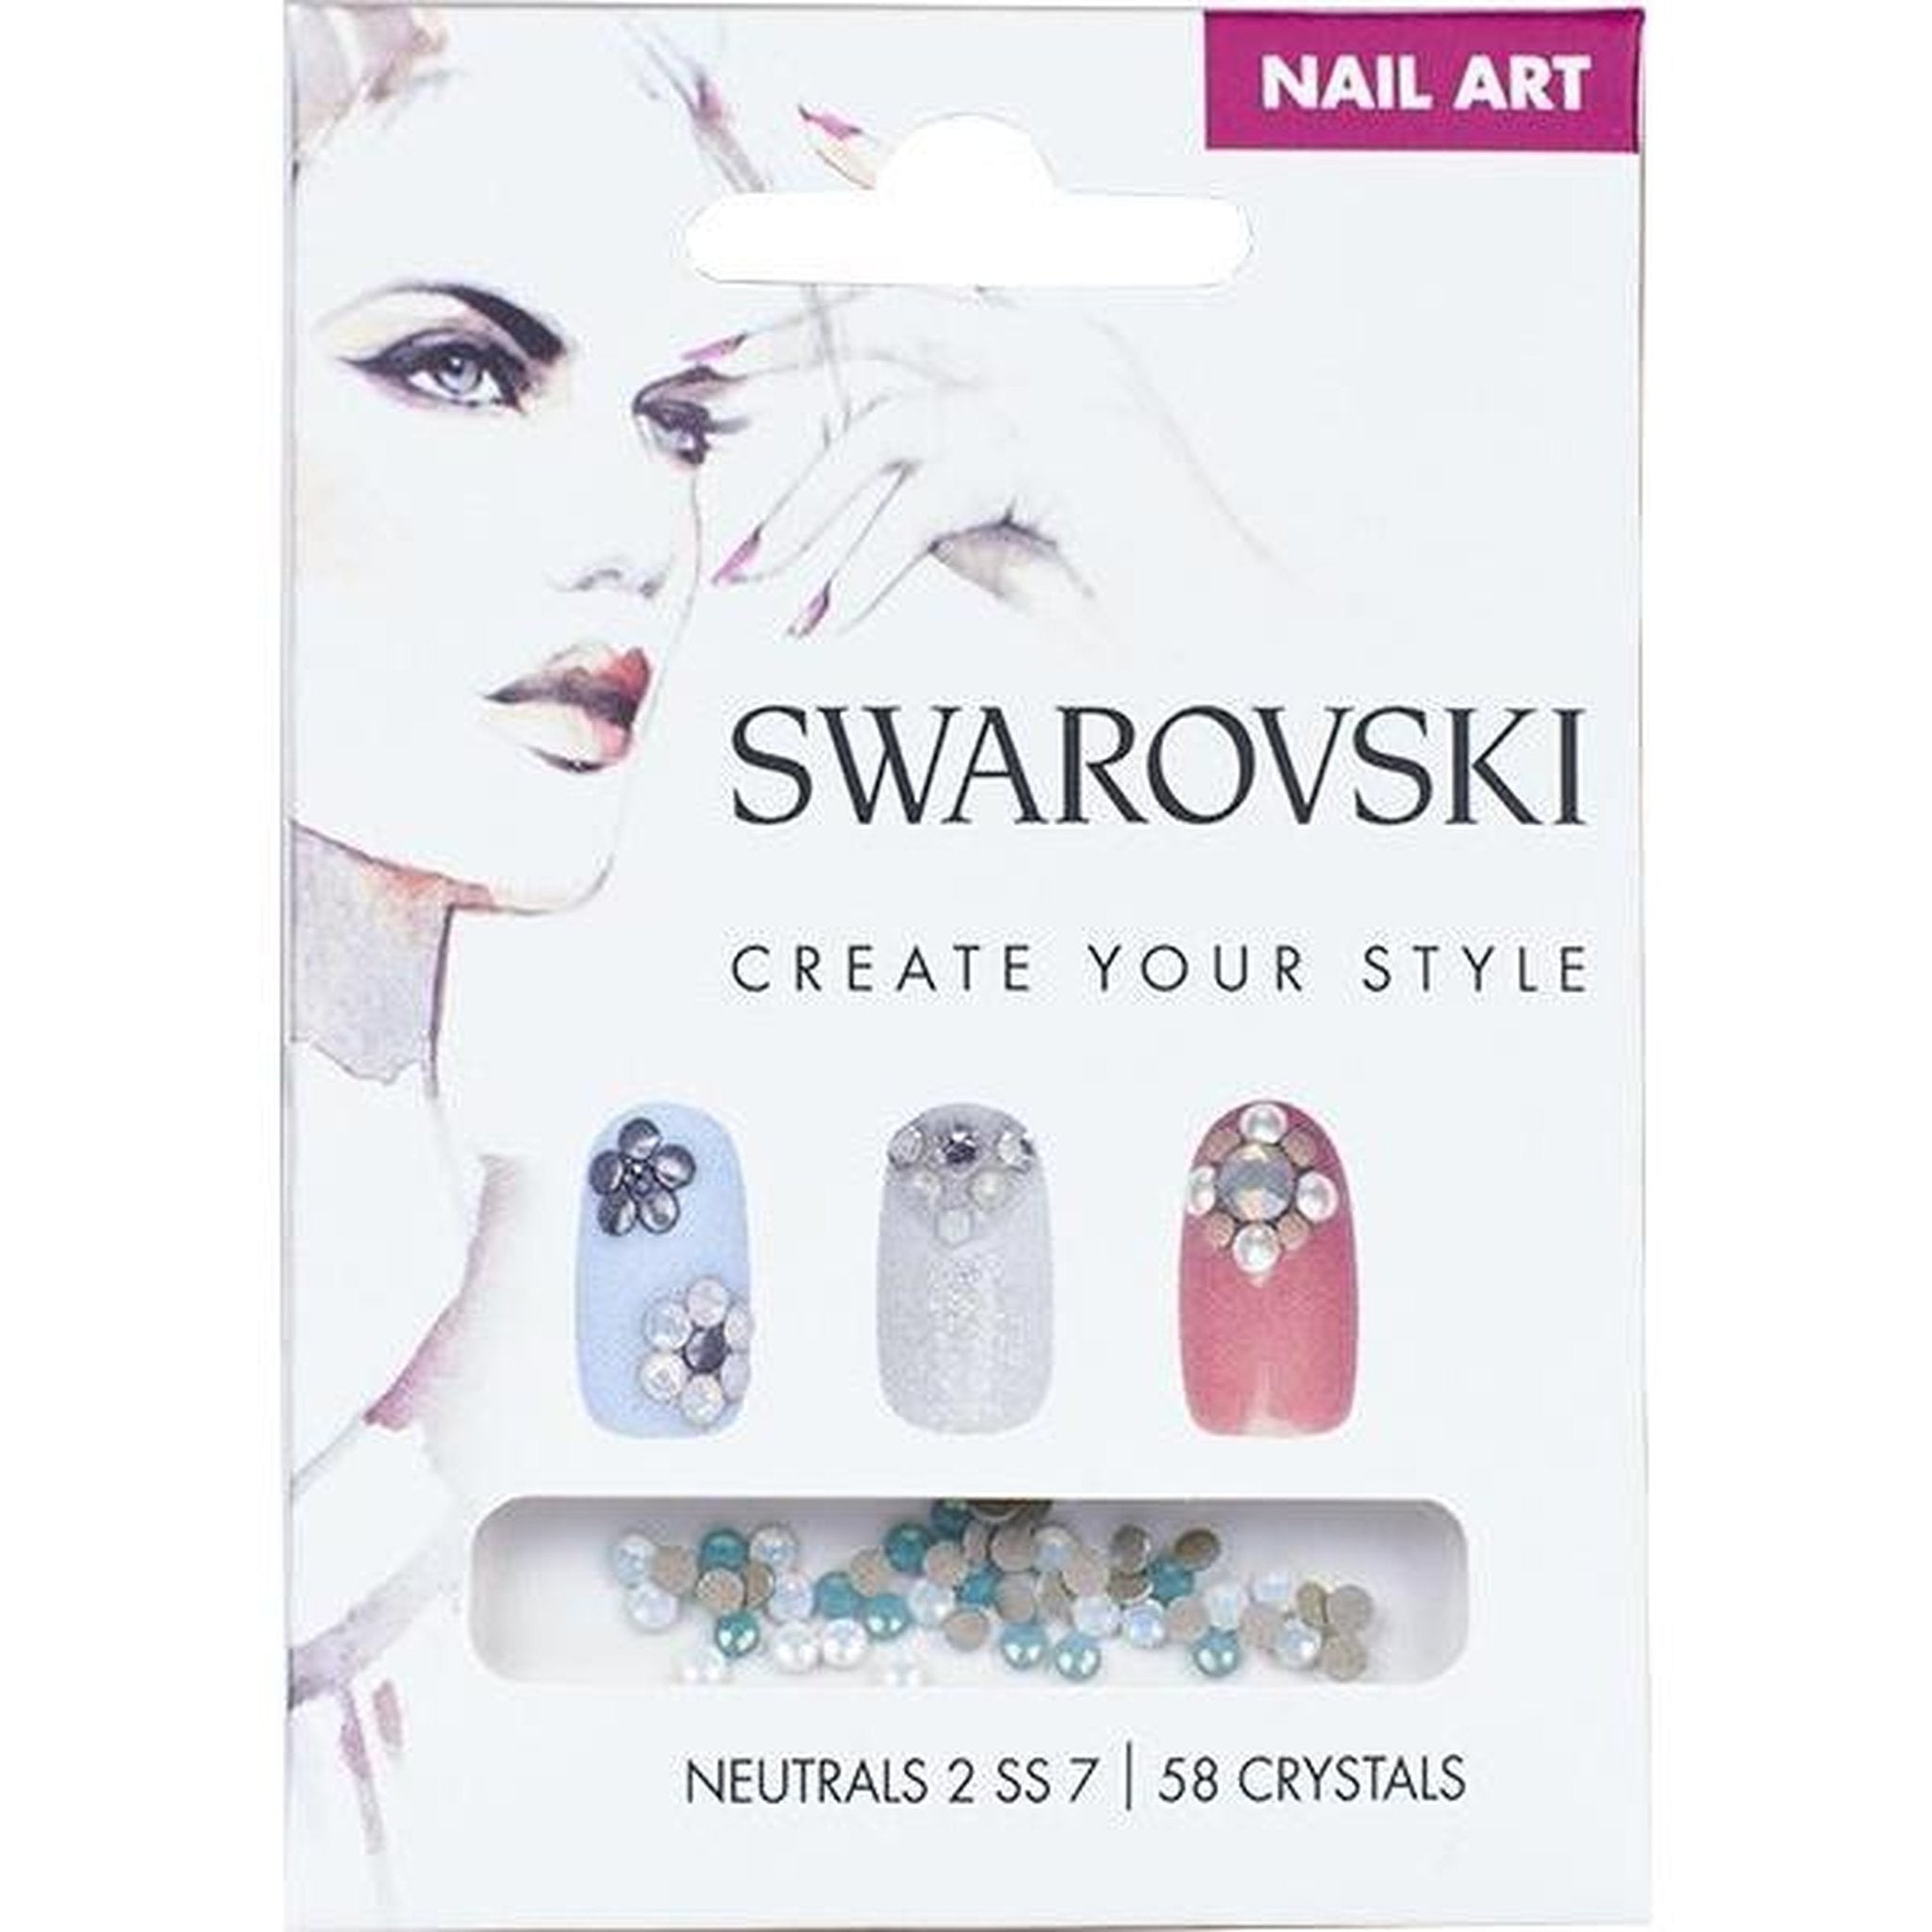 SWAROVSKI NAIL ART LOOSE CRYSTALS - NEUTRAL 2 SS7-Gel Essentialz